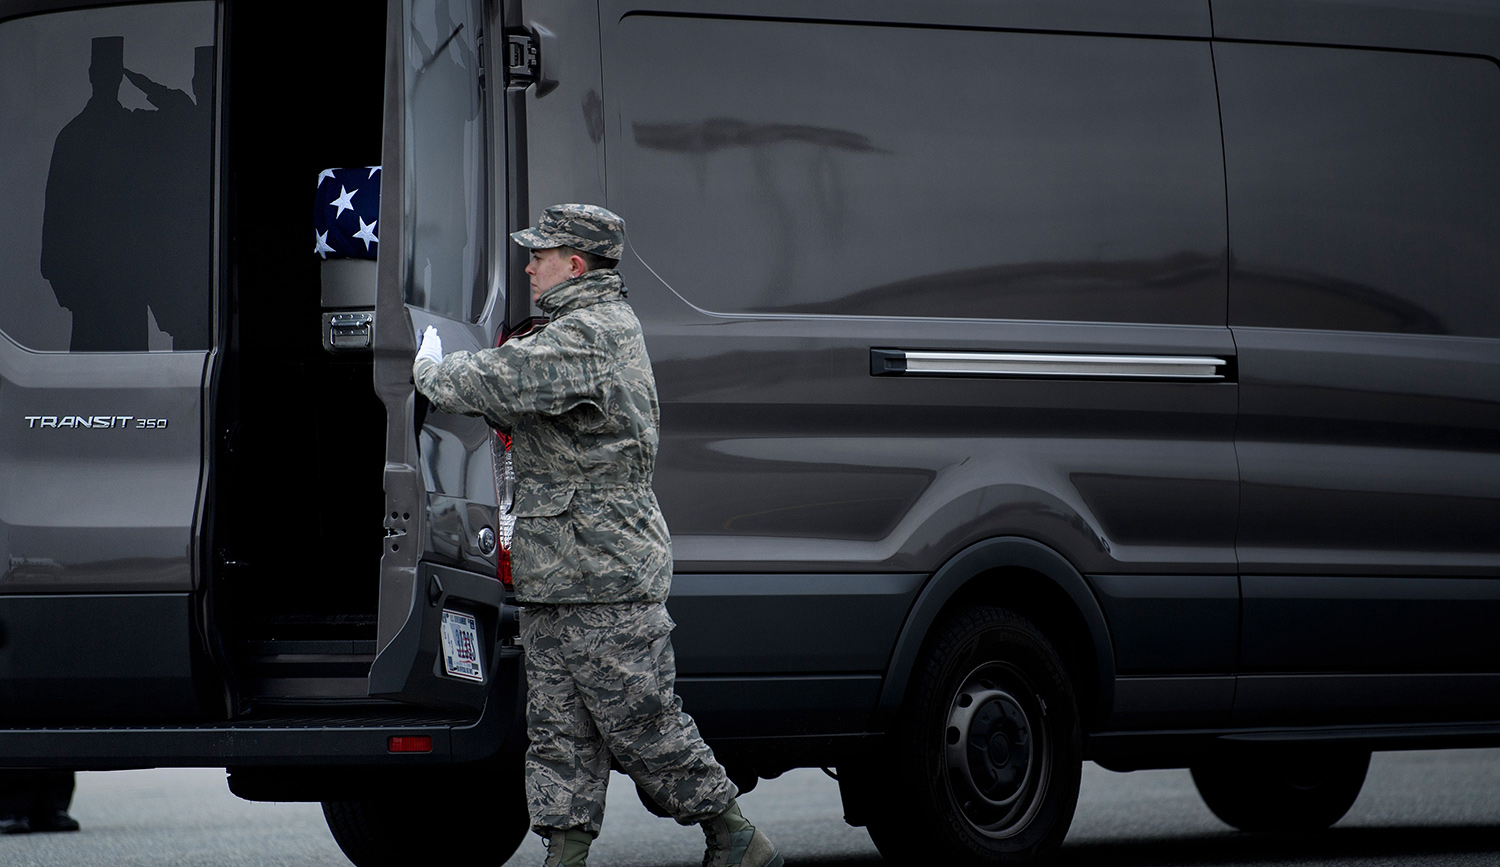 A member of the Air Force secures the remains of Scott A. Wirtz, a Defense Intelligence Agency civilian and former Navy Seal killed in a suicide bombing in Syria. BRENDAN SMIALOWSKI/AFP/Getty Images.